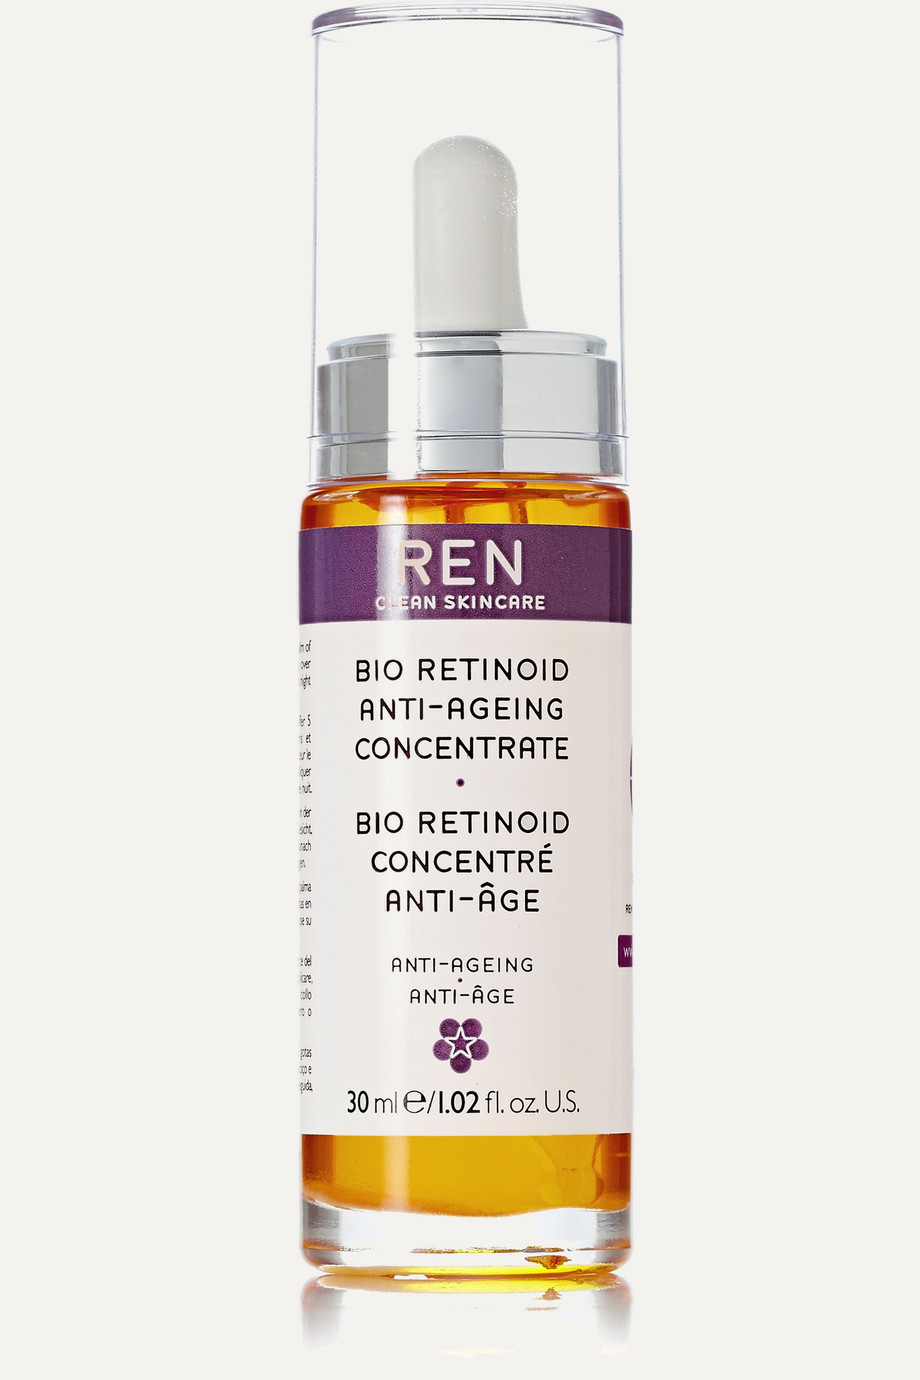 Bio Retinoid Anti-Ageing Concentrate, 30ml, by Ren Skincare